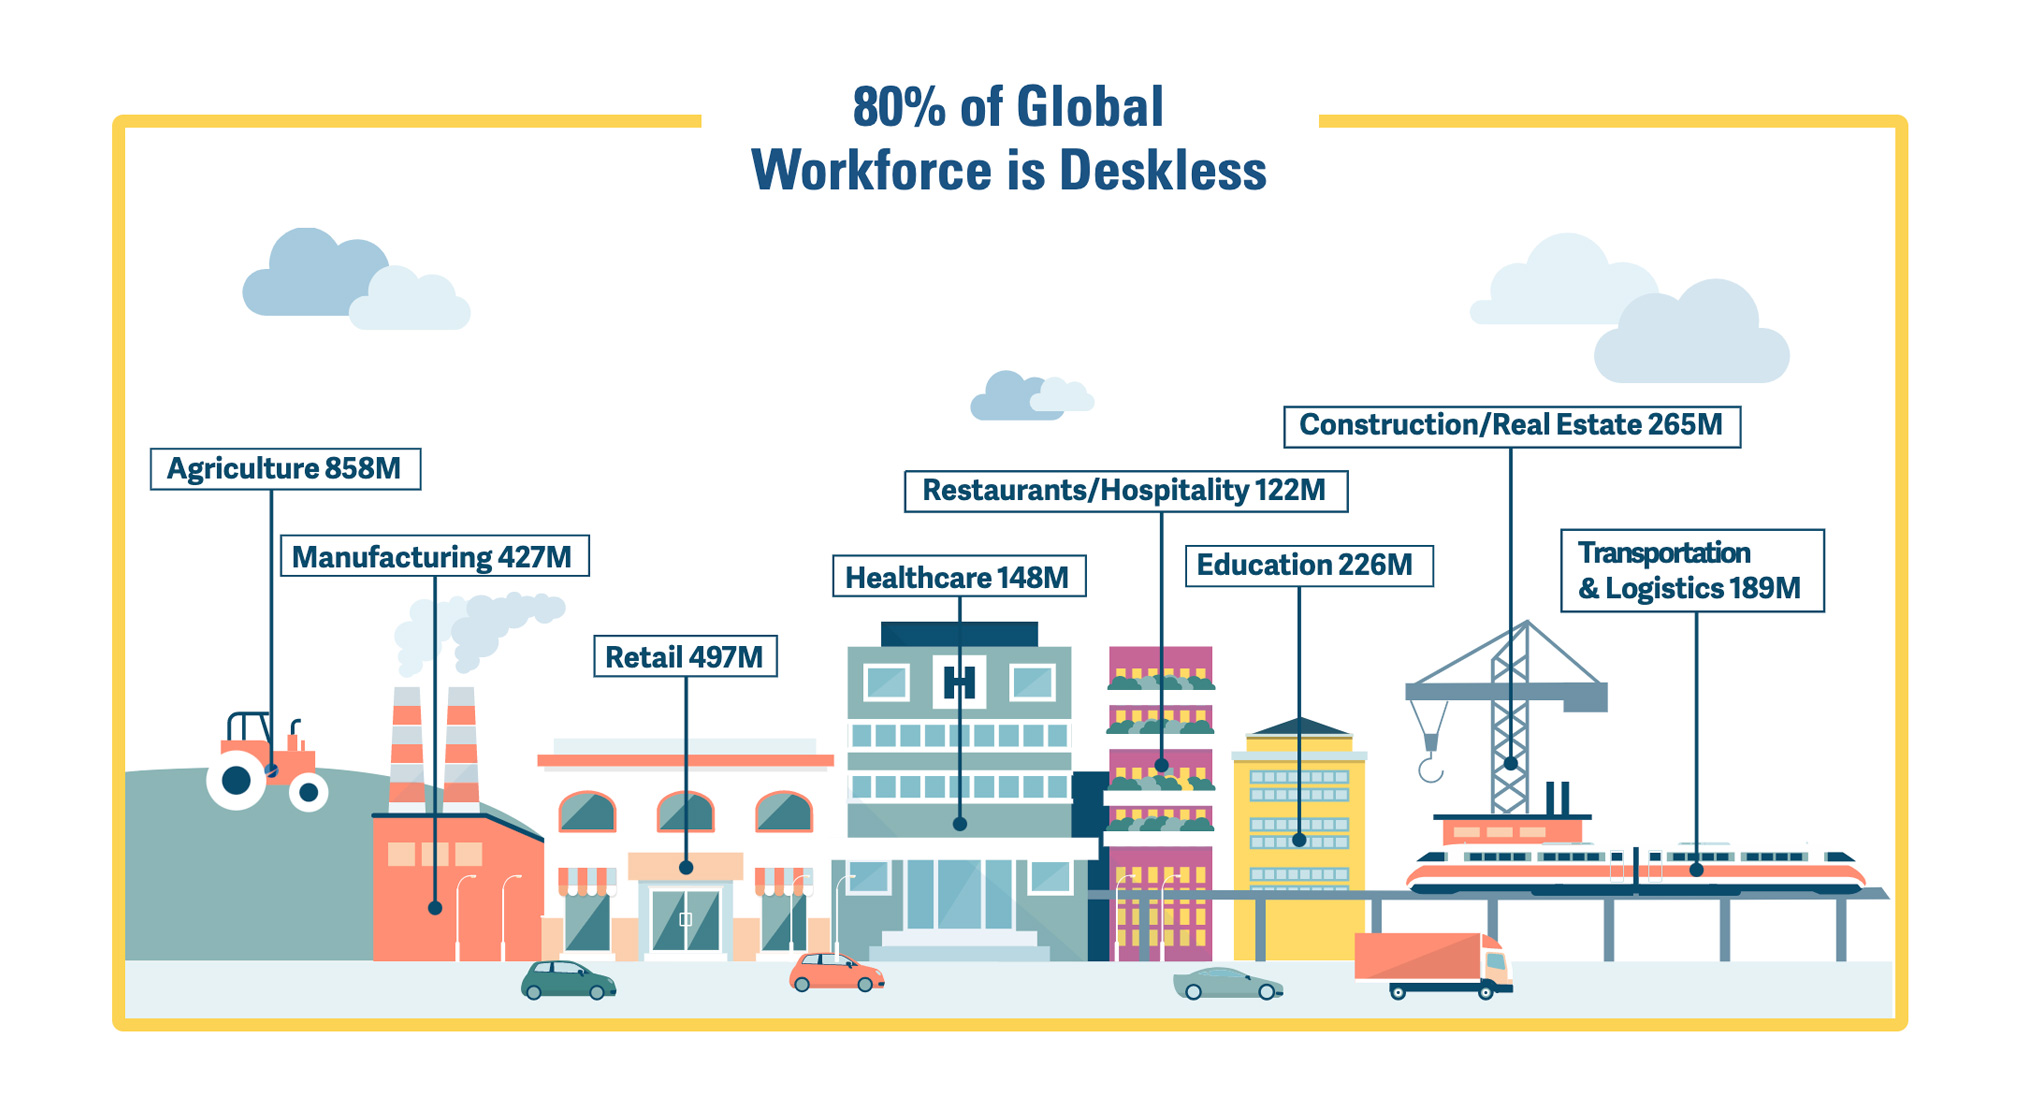 Deskless Workforce